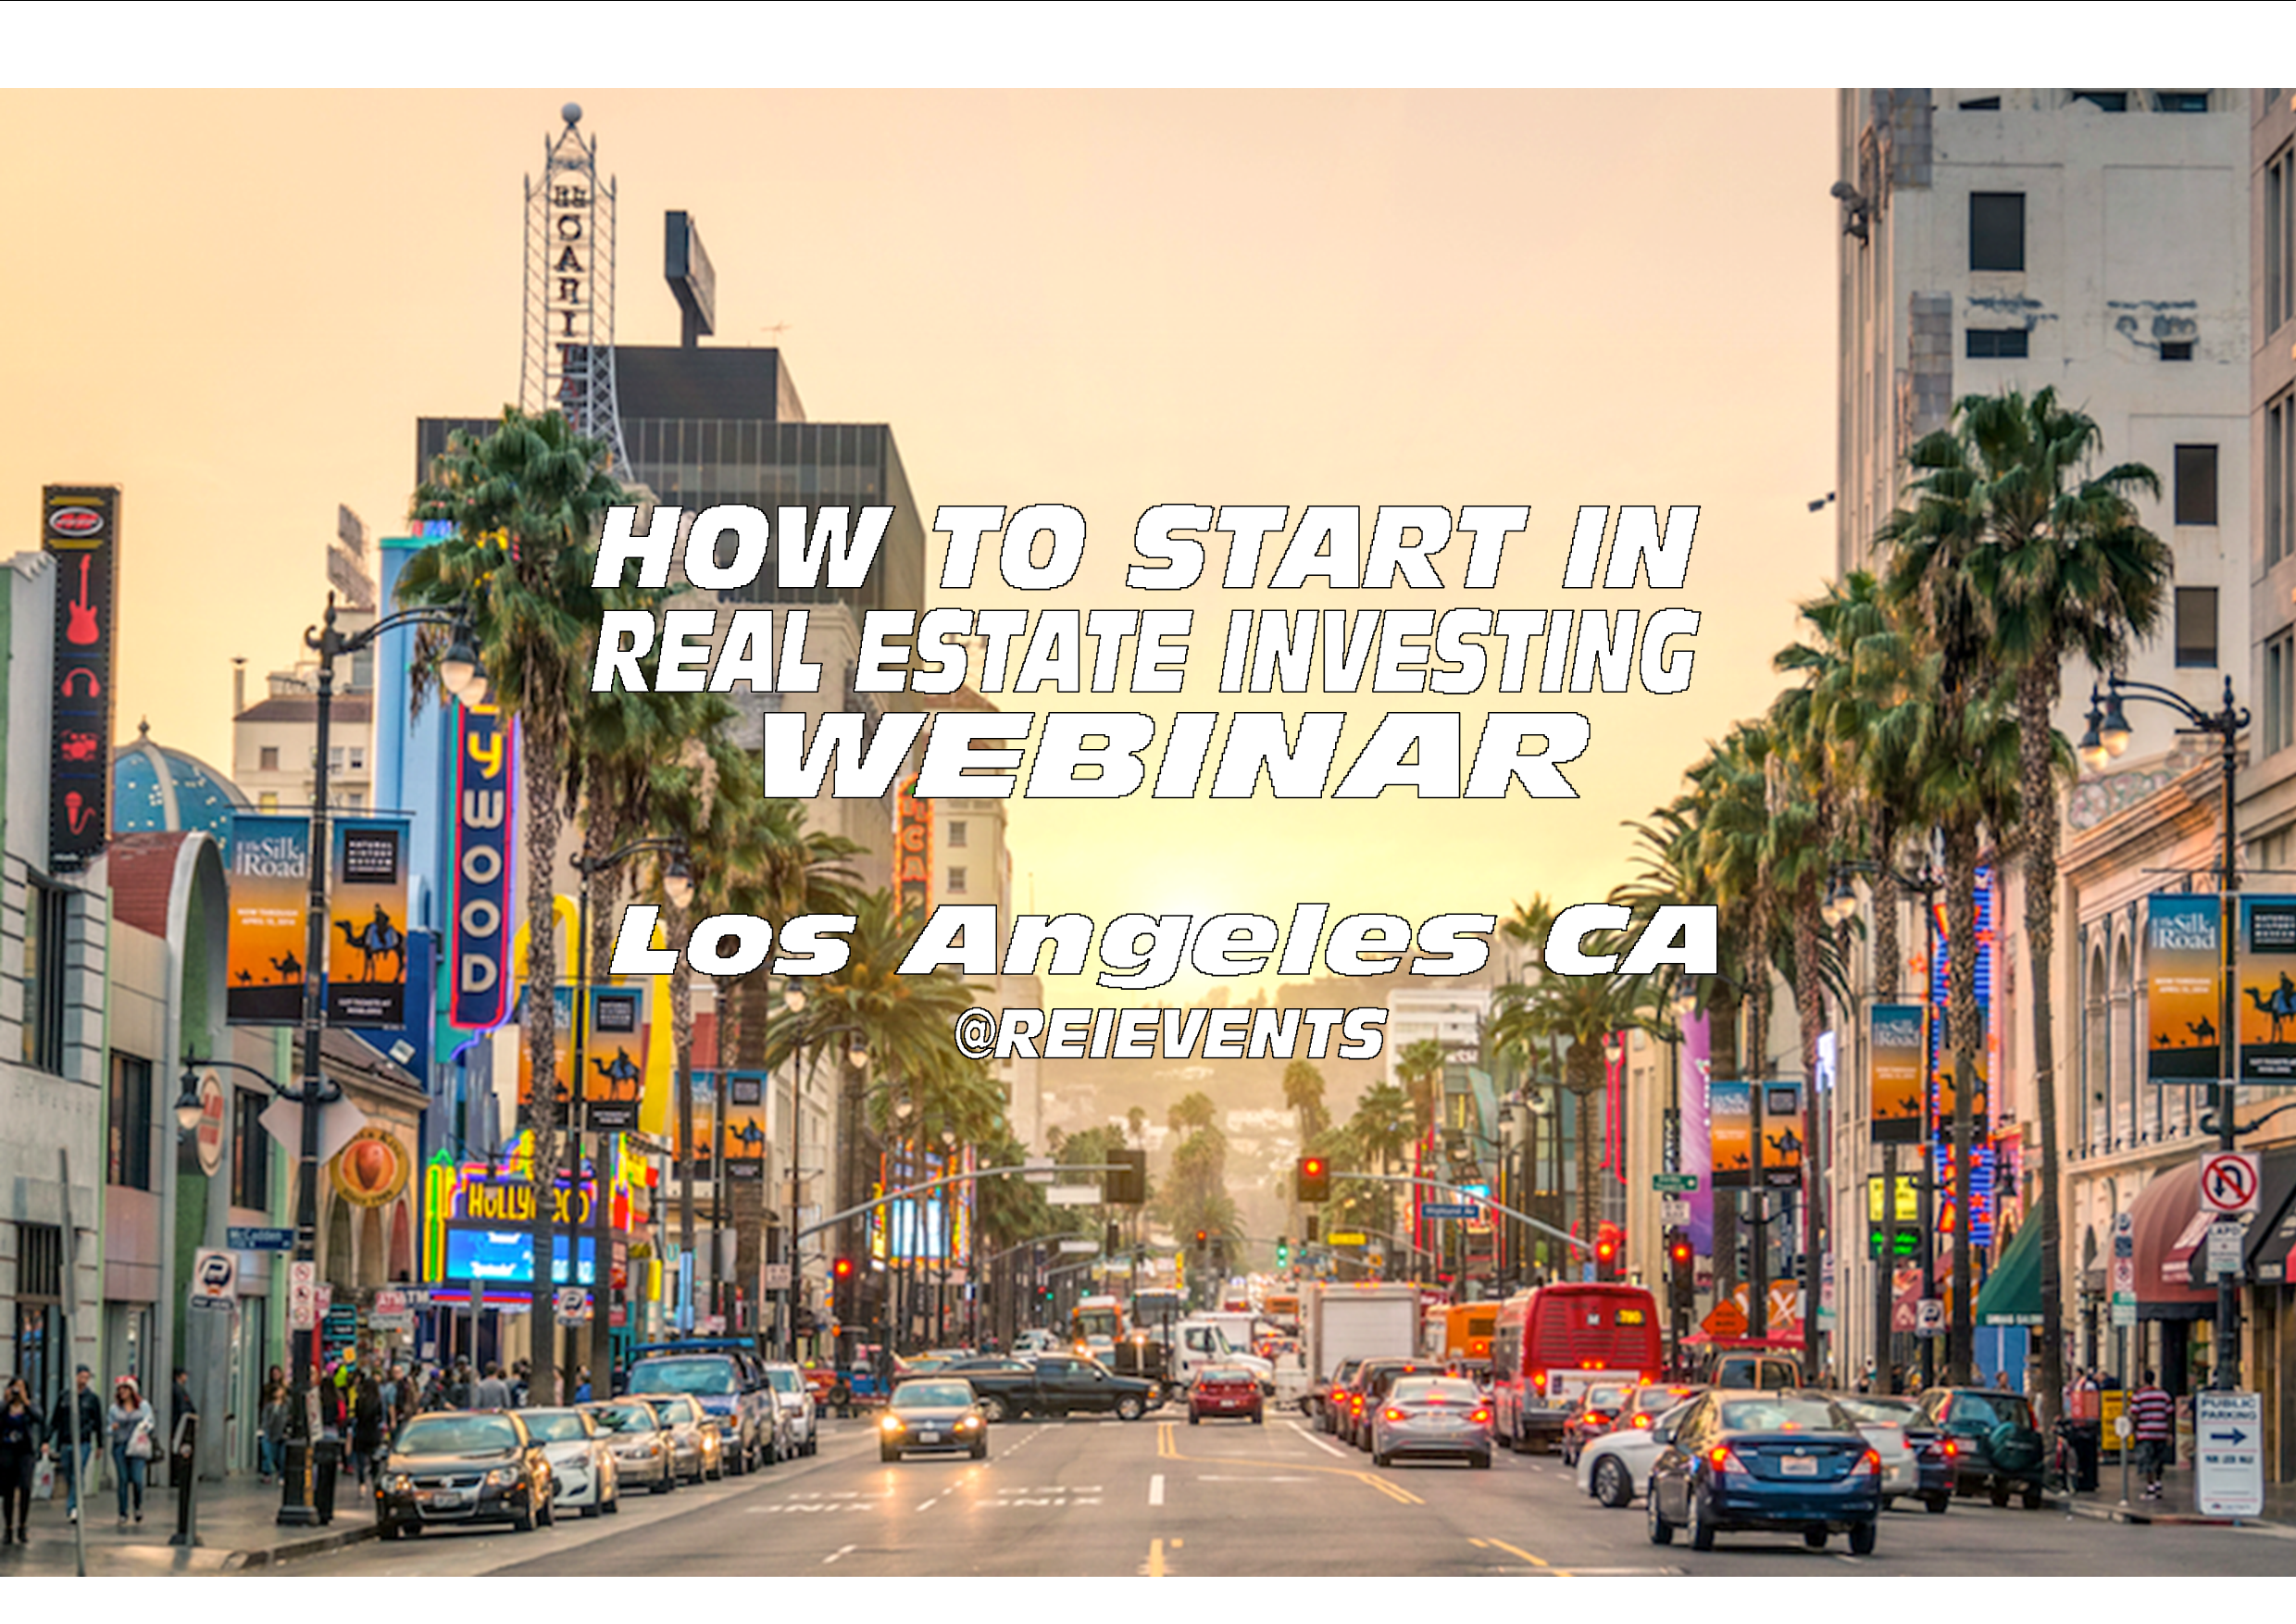 HOW TO START IN REAL ESTATE INVESTING - WEBINAR - LOS ANGELES, CA